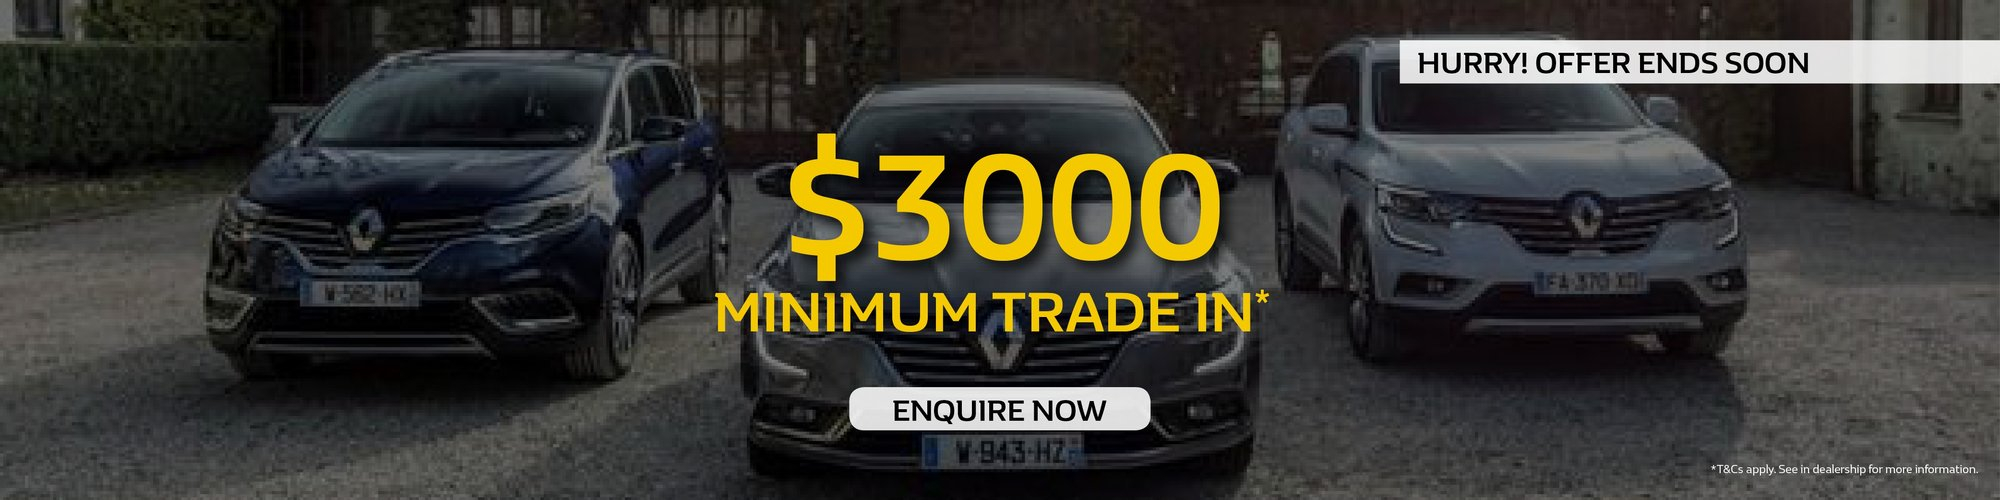 $3000 minimum trade in* T&CS apply.